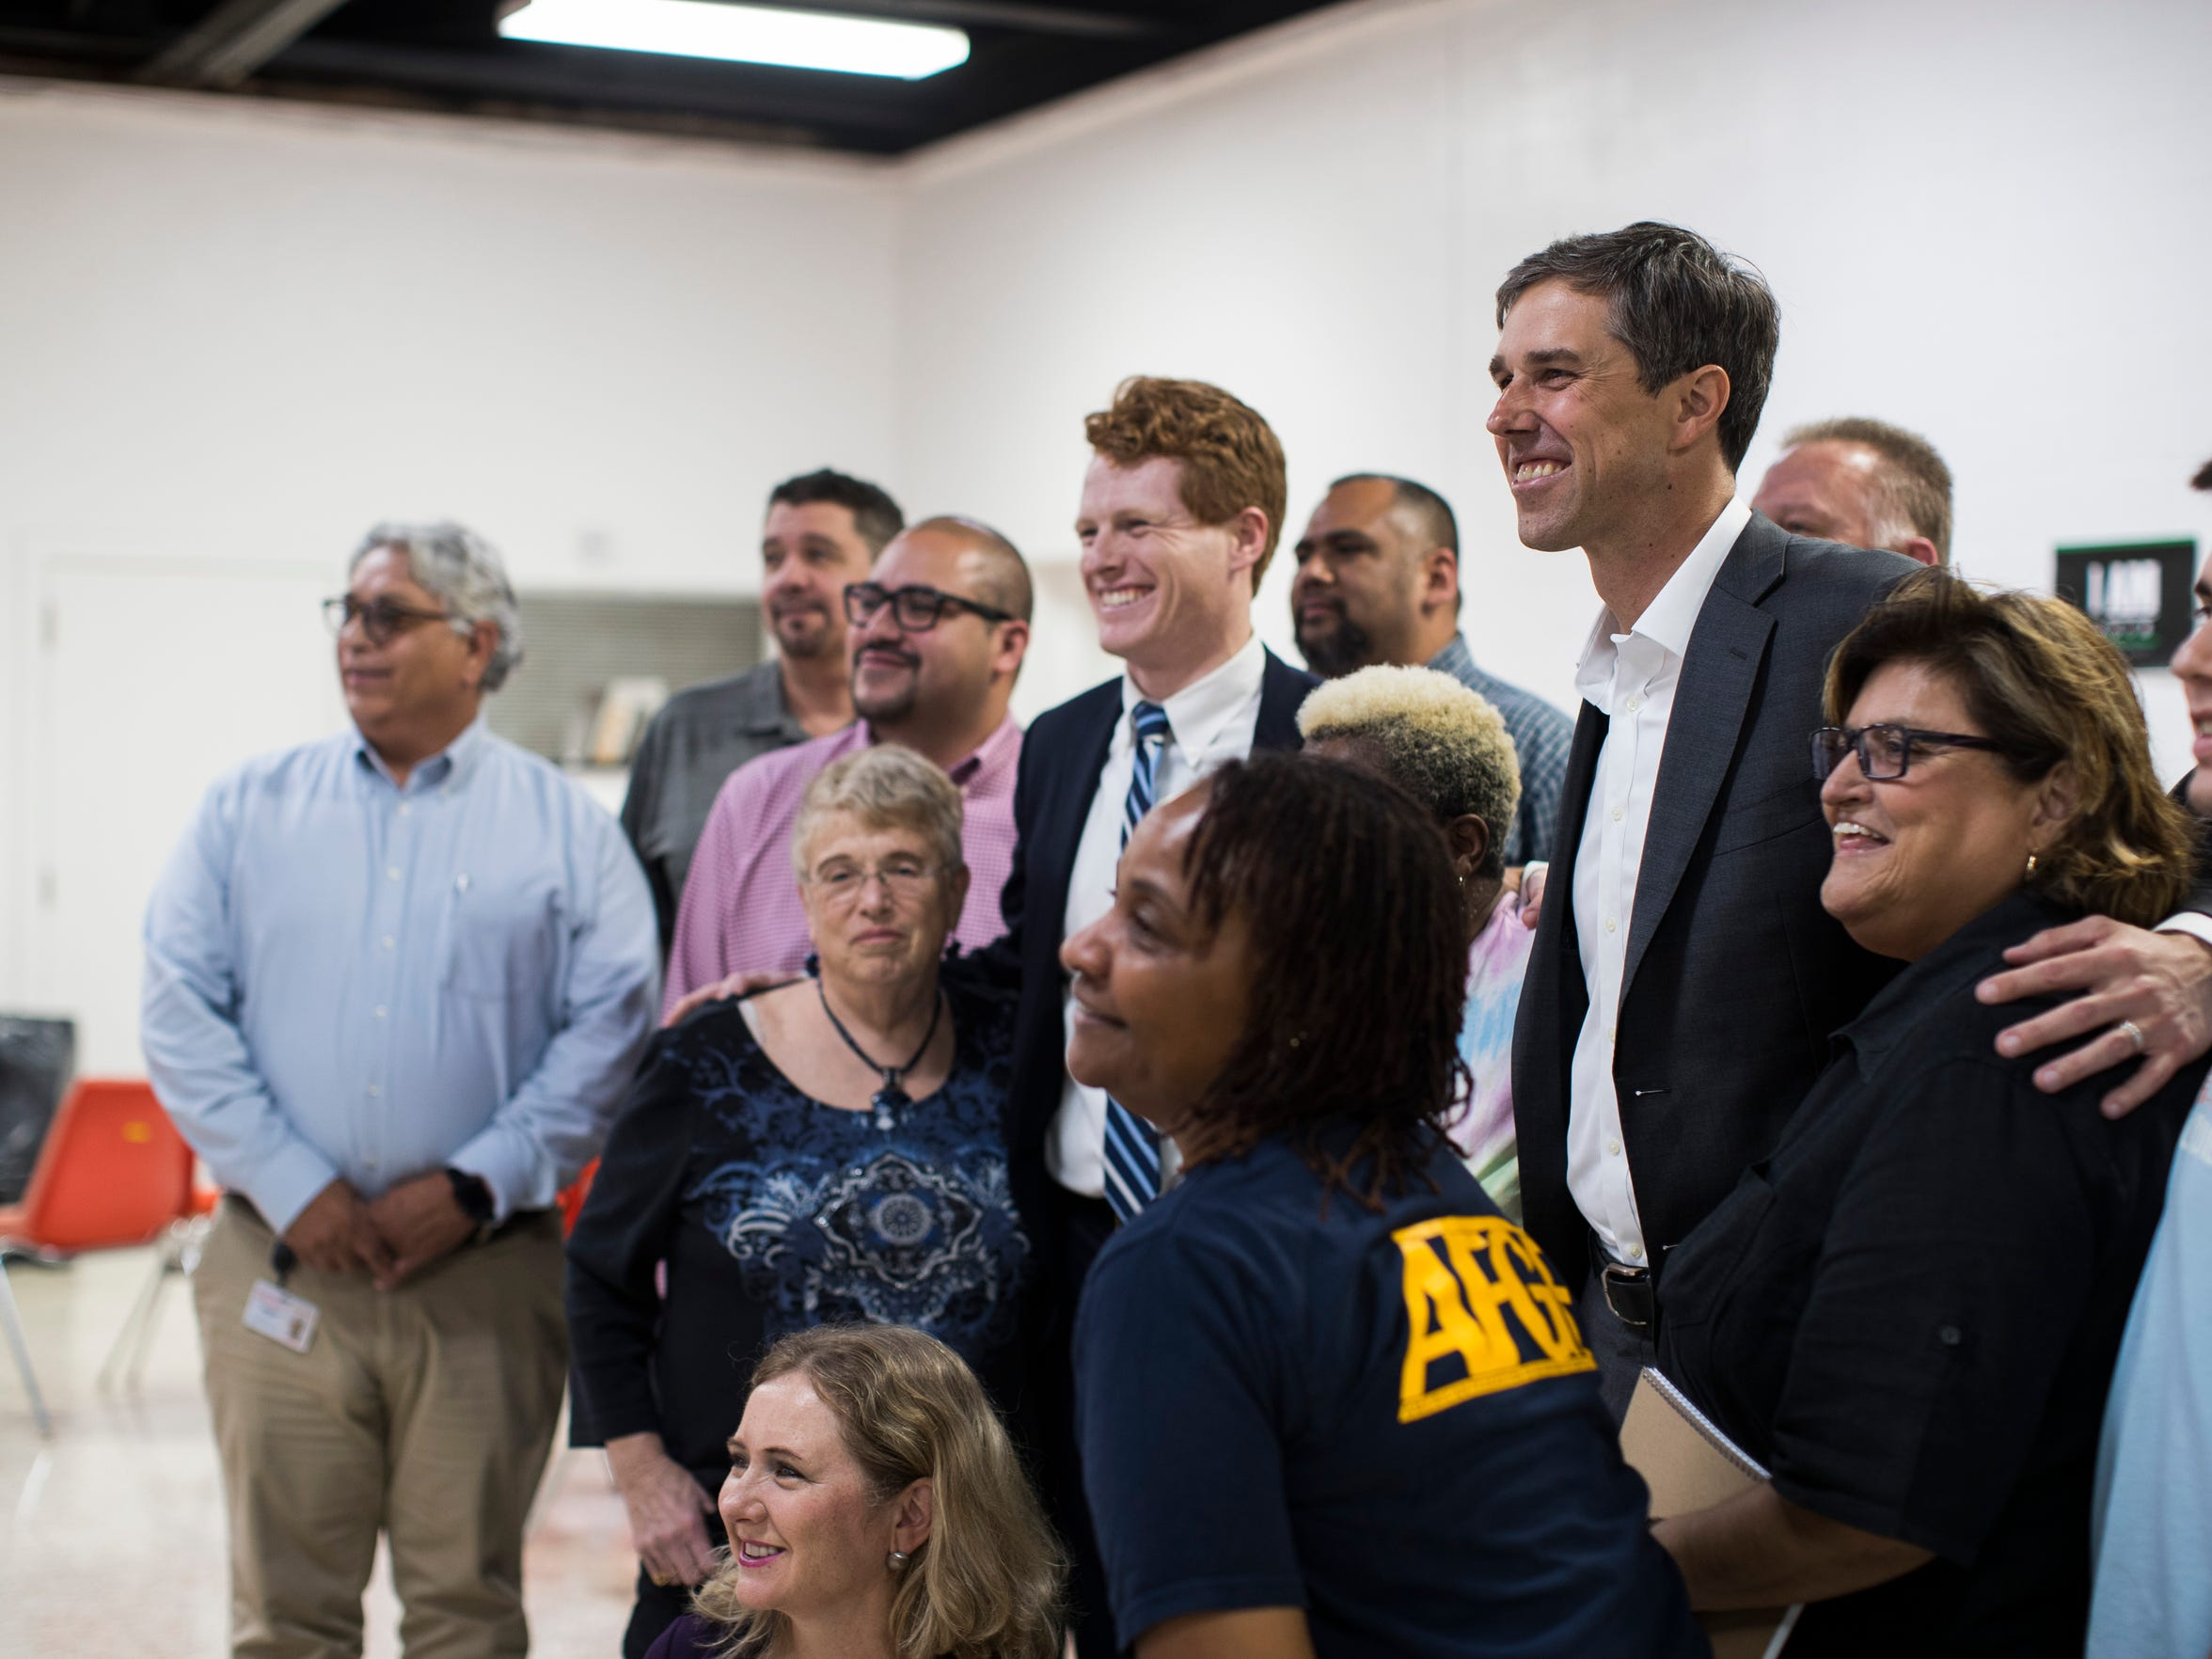 U.S. Reps. Beto O'Rourke and Joe Kennedy meet with labor organizers in Houston as part of O'Rourke's Senate campaign. O'Rourke has worked to smooth over his relationship with state's AFL-CIO, which initially declined to endorse his campaign after he missed its convention. They have since put their support behind him.